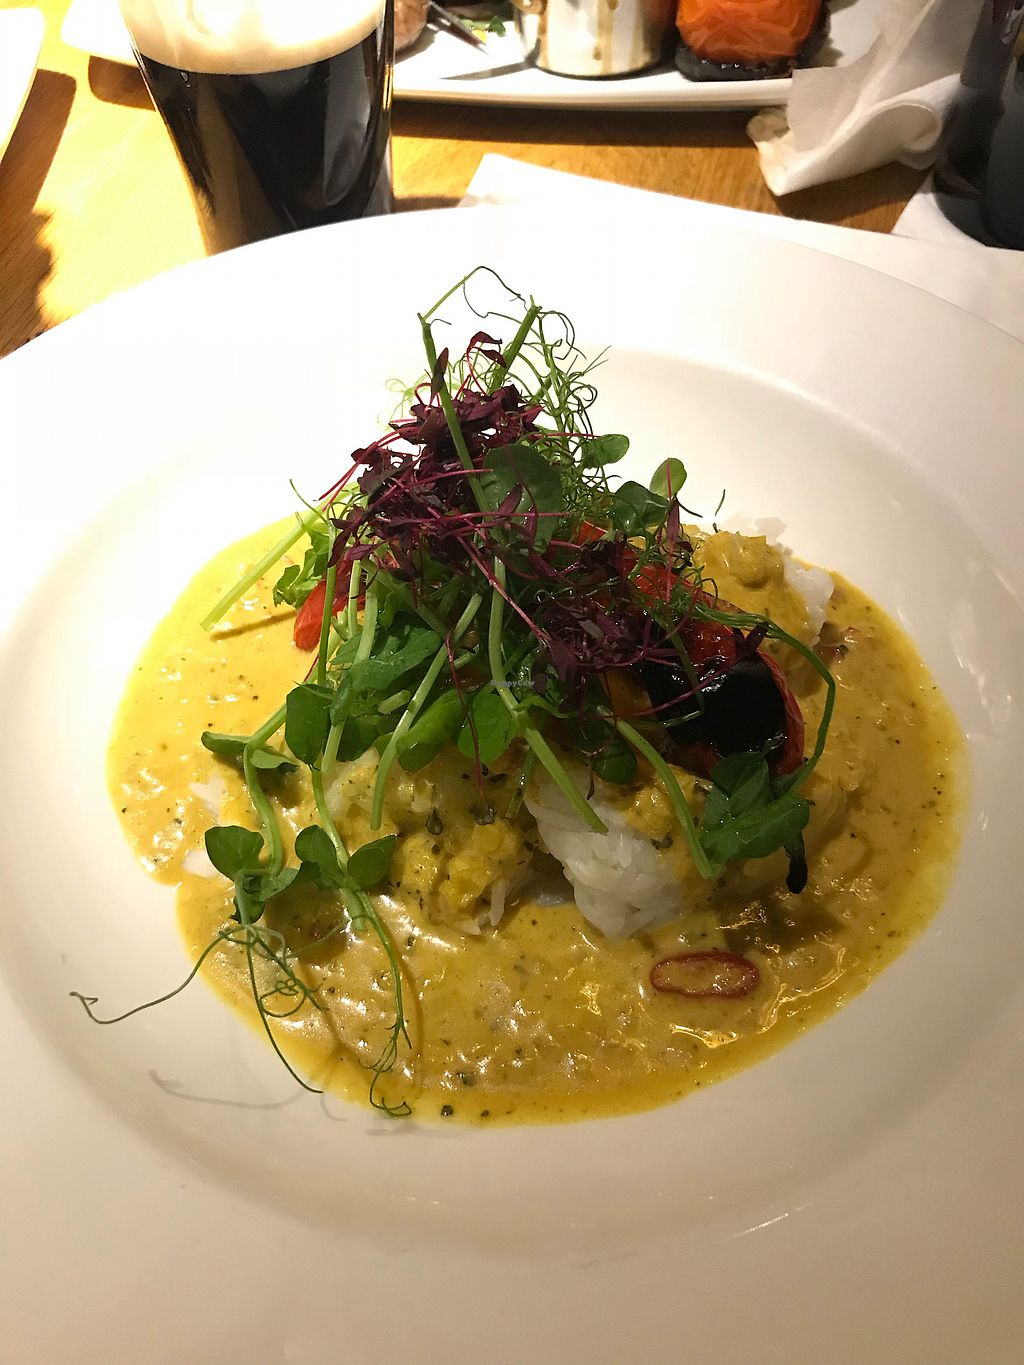 """Photo of The Rose and Crown  by <a href=""""/members/profile/Brunorg"""">Brunorg</a> <br/>Spiced coconut curry <br/> March 8, 2018  - <a href='/contact/abuse/image/111179/368075'>Report</a>"""